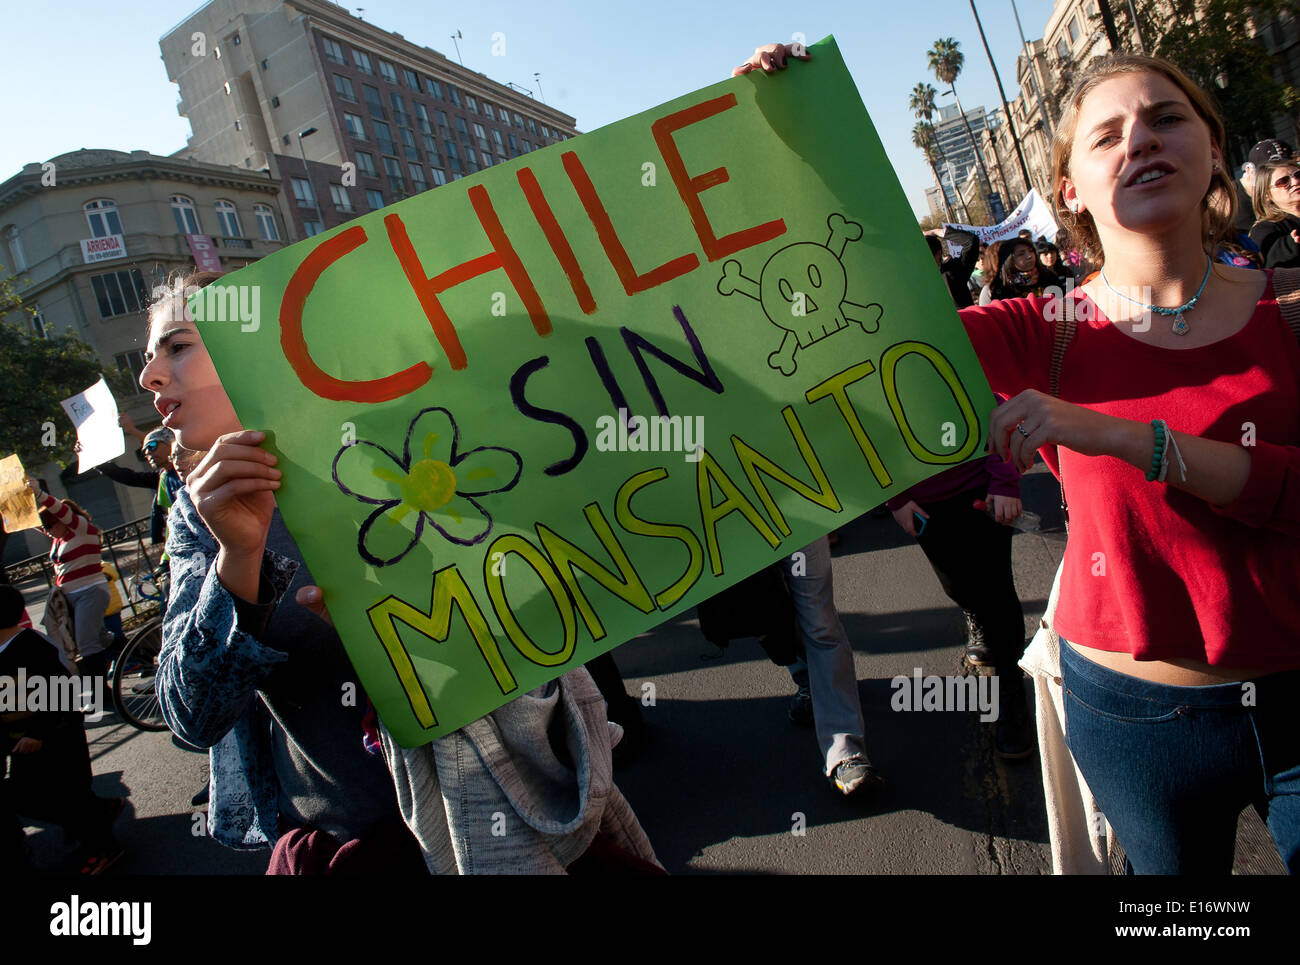 Santiago, Chile. 24th May, 2014. People take part in a protest in Santiago, capital of Chile, on May 24, 2014. Activists from all around the world rallied on Saturday during a global protest day against the transgenic company Monsanto, demanding the support to local farmers and the protection of the food supply. © Jorge Villegas/Xinhua/Alamy Live News - Stock Image